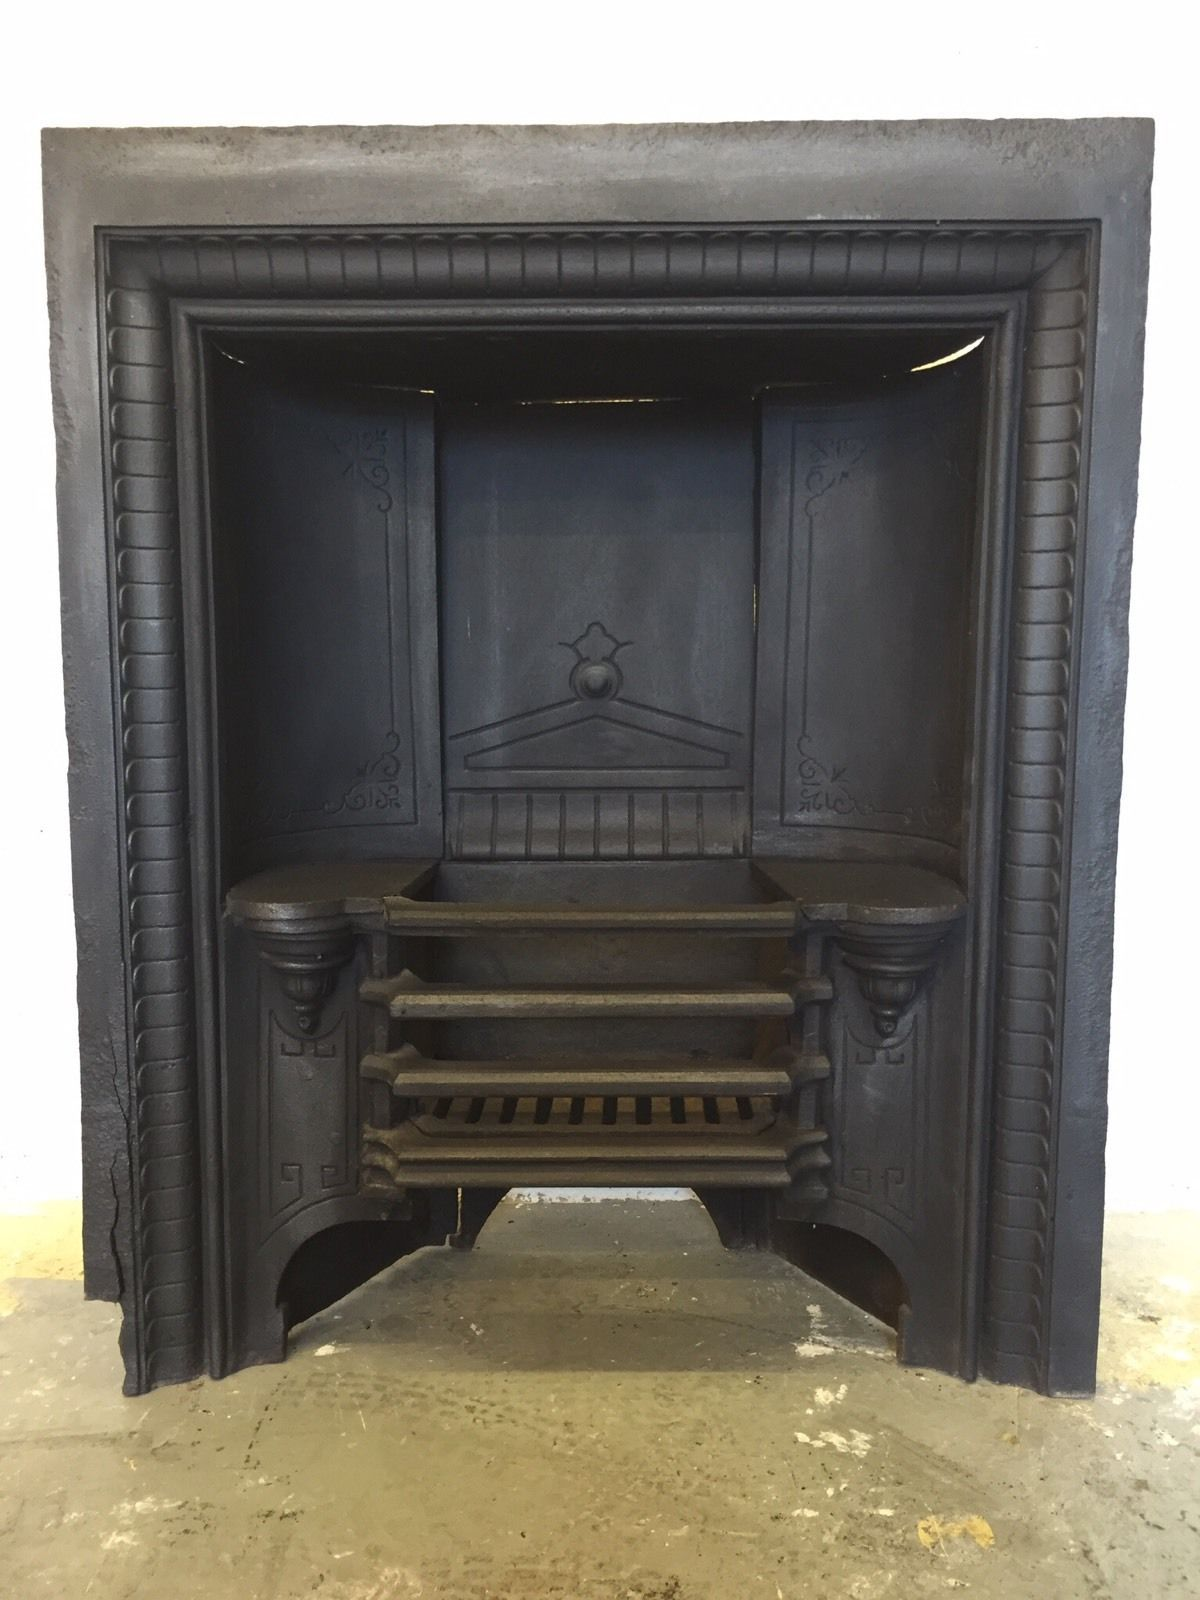 Vintage stoves and…